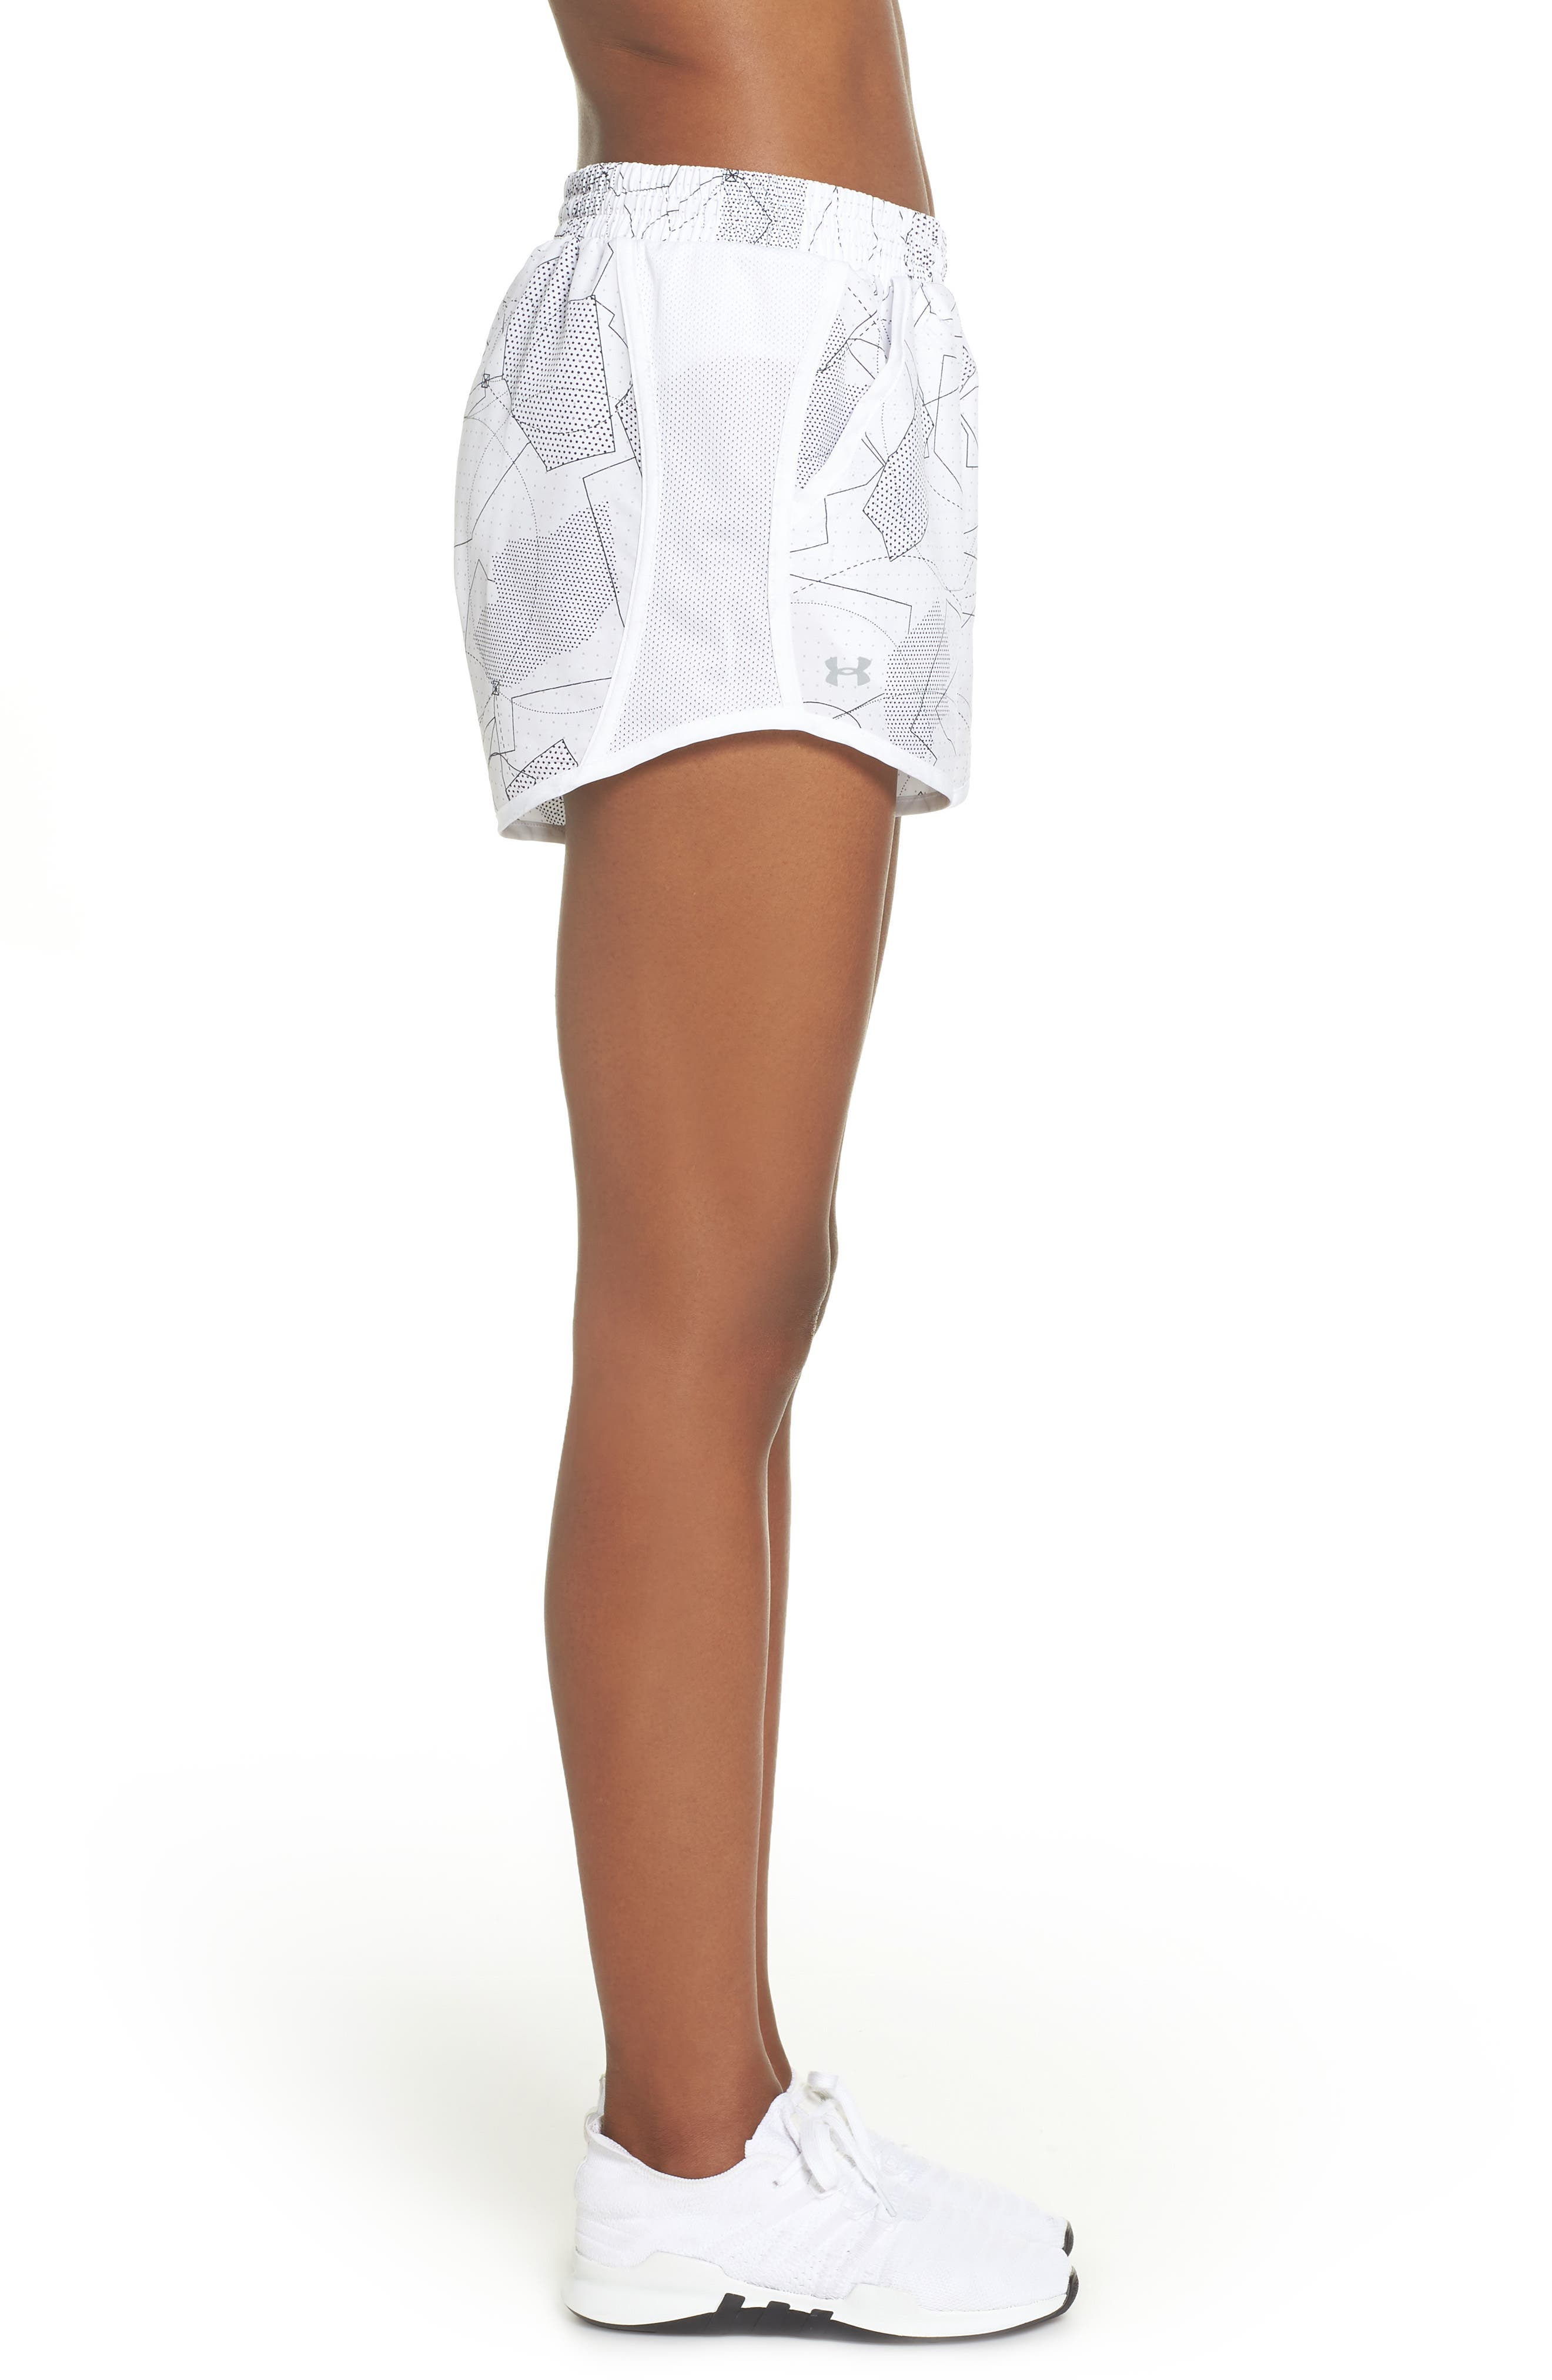 Fly-By Print Shorts,                             Alternate thumbnail 6, color,                             White/ White/ Reflective